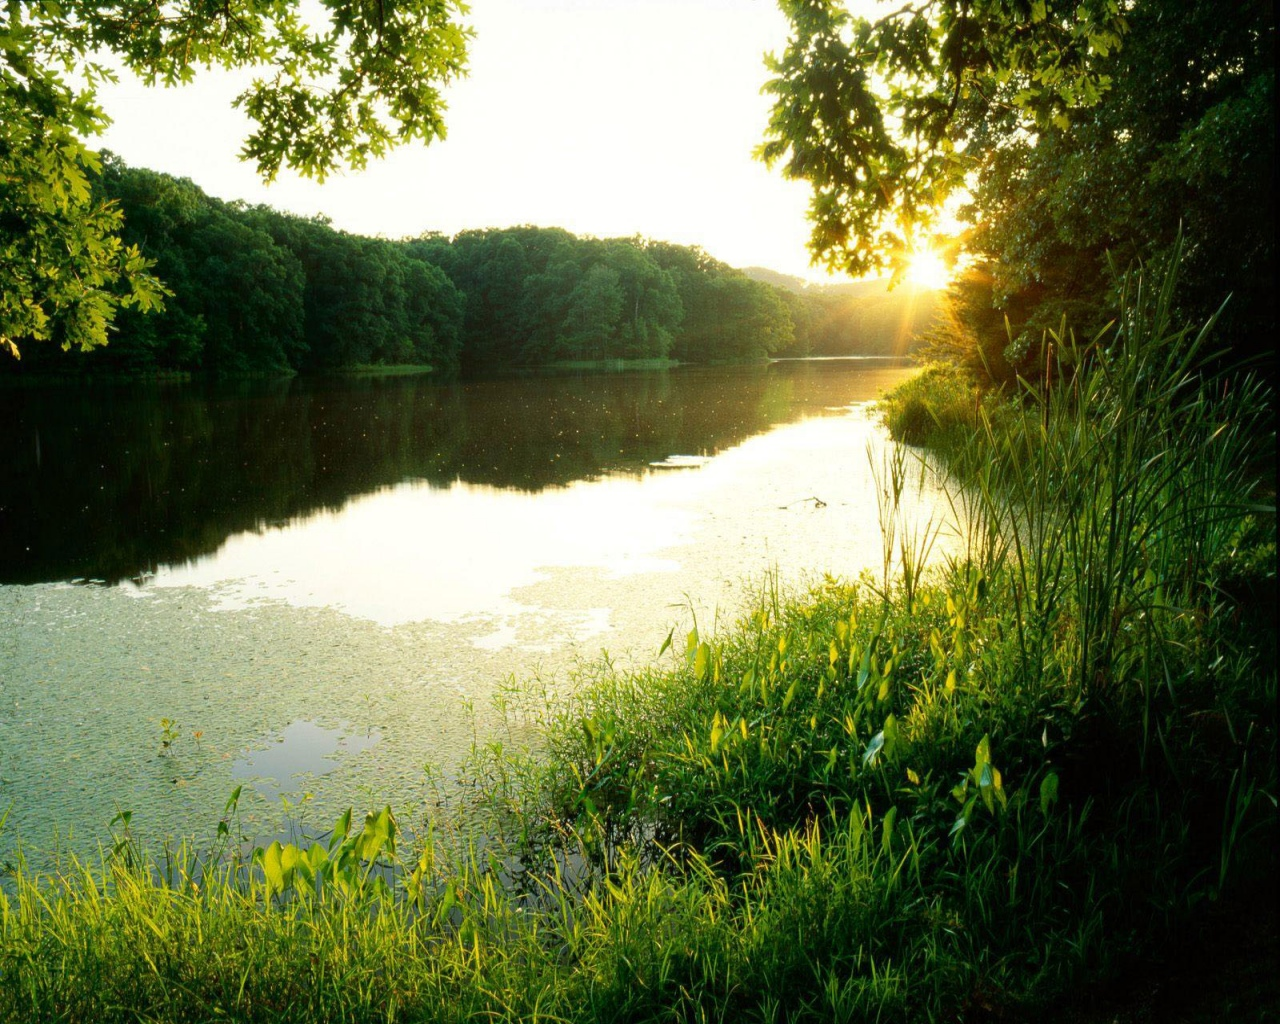 Sun, air, greenery and water photo as wallpaper for your desktop